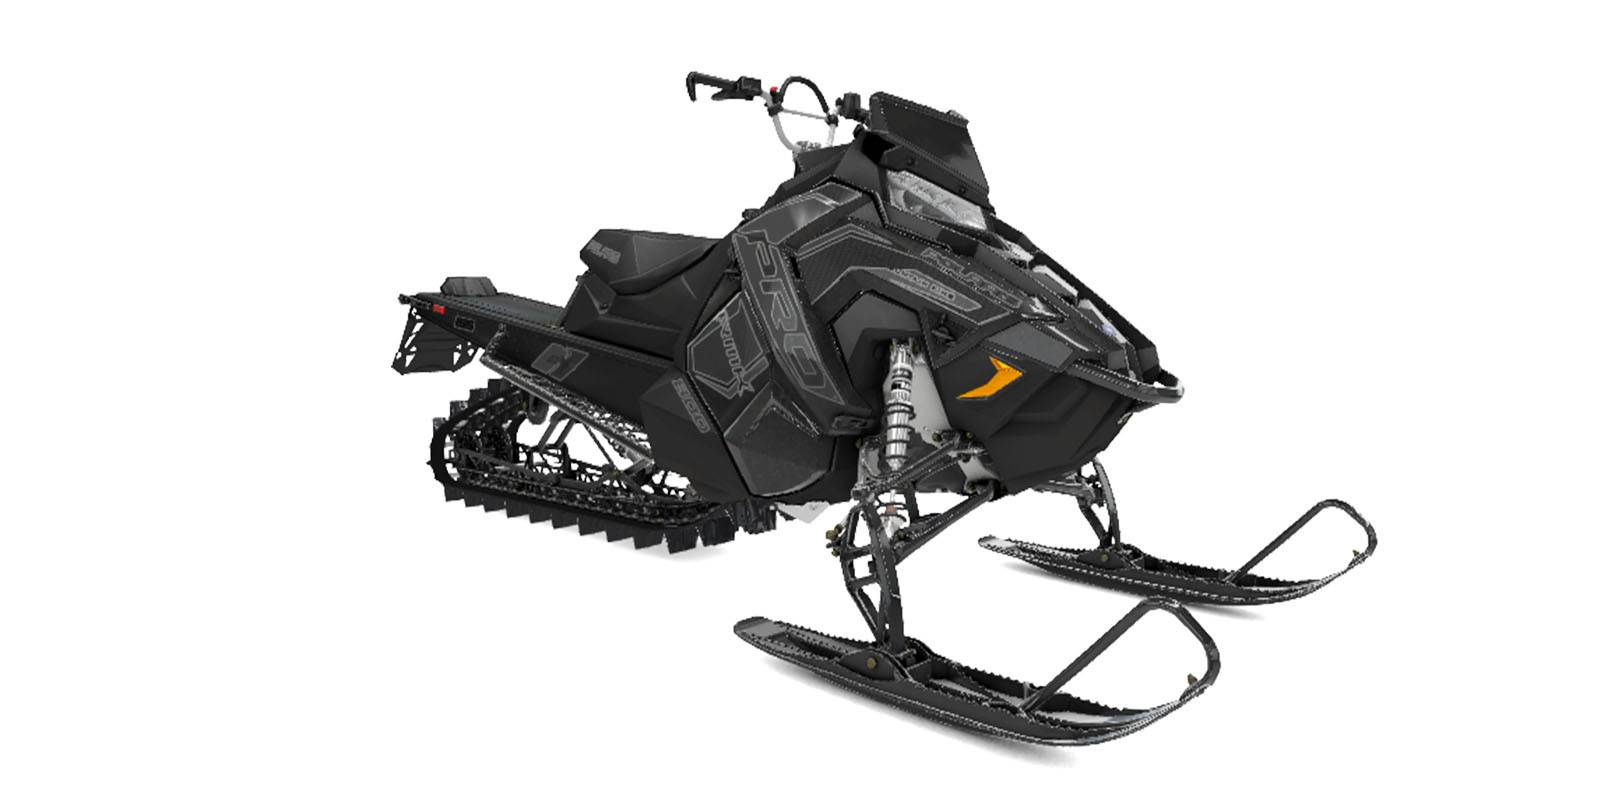 2019 Polaris 800 PRO-RMK 155 SnowCheck Select in Grimes, Iowa - Photo 1